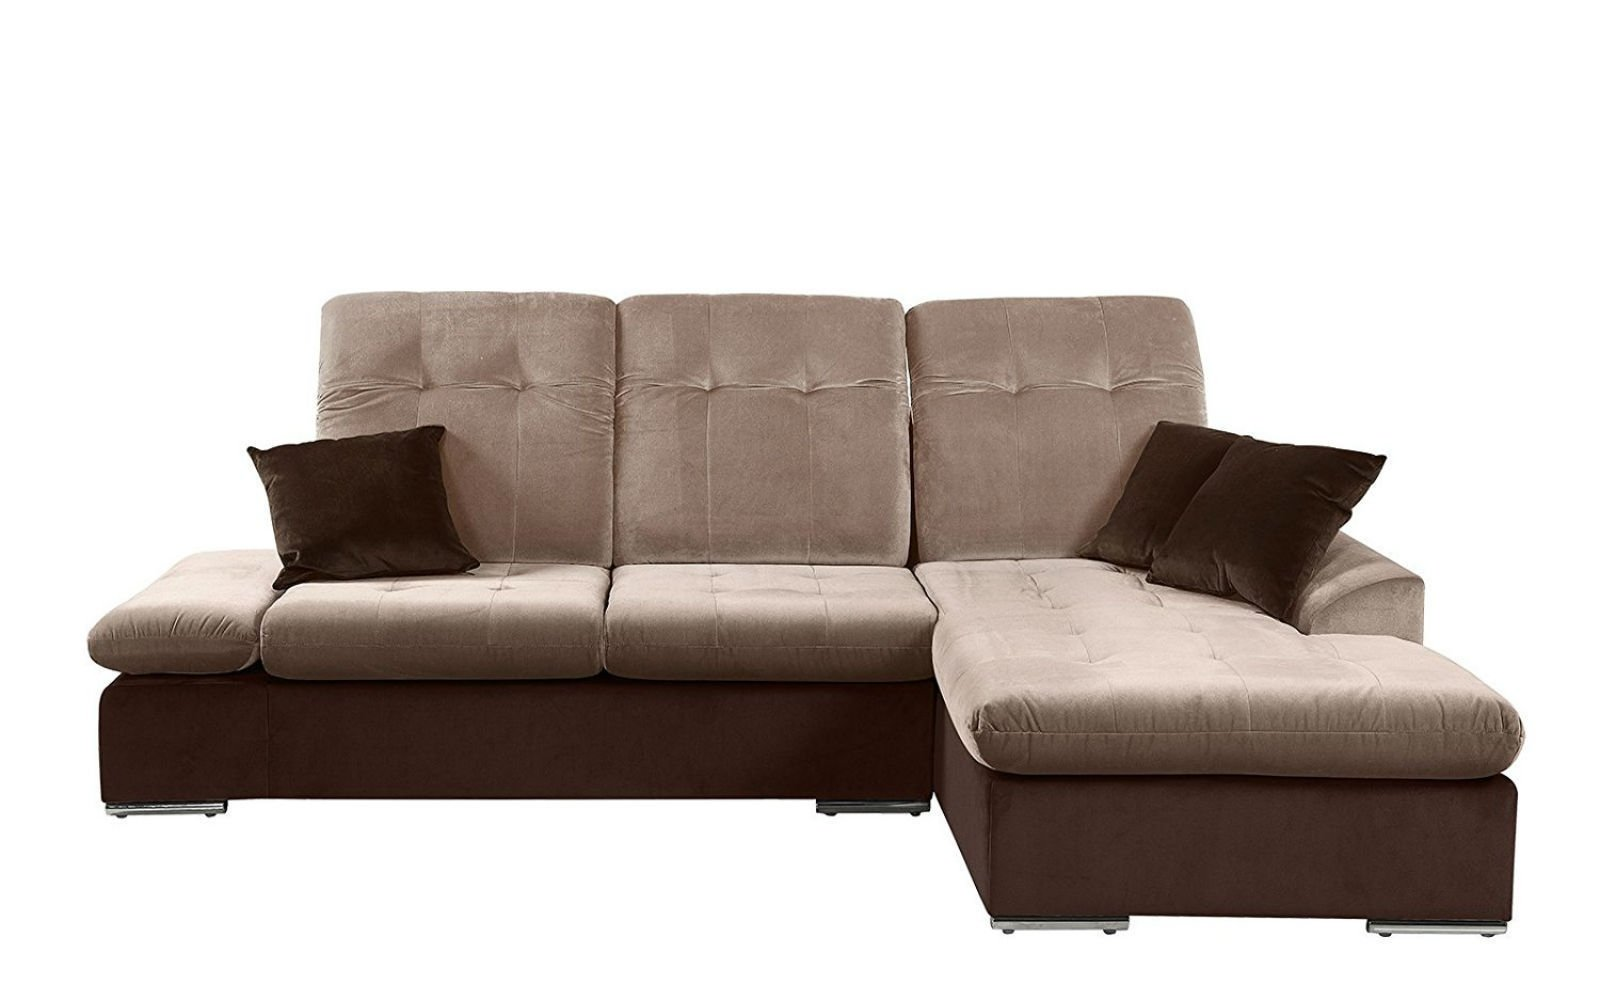 Details about Modern Microfiber Sectional Sofa With Chaise - L Shape Couch  (Brown / Hazelnut)